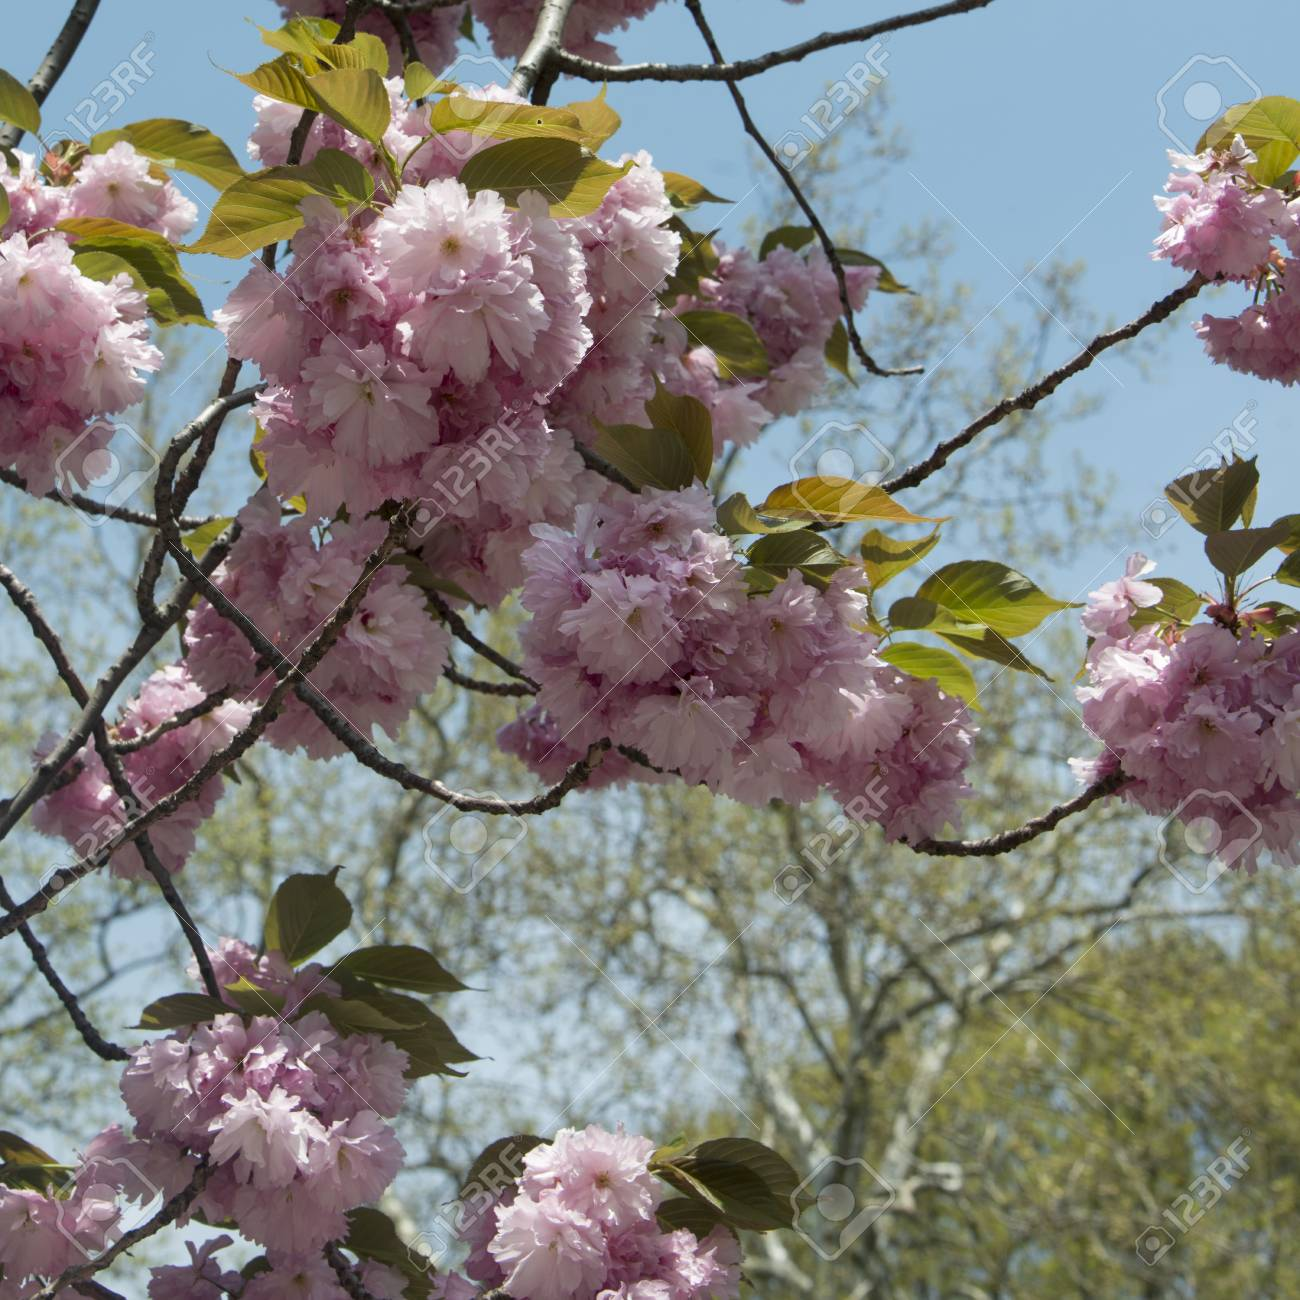 Cherry Blossom Tree In Central Park Manhattan New York City Stock Photo Picture And Royalty Free Image Image 97769134